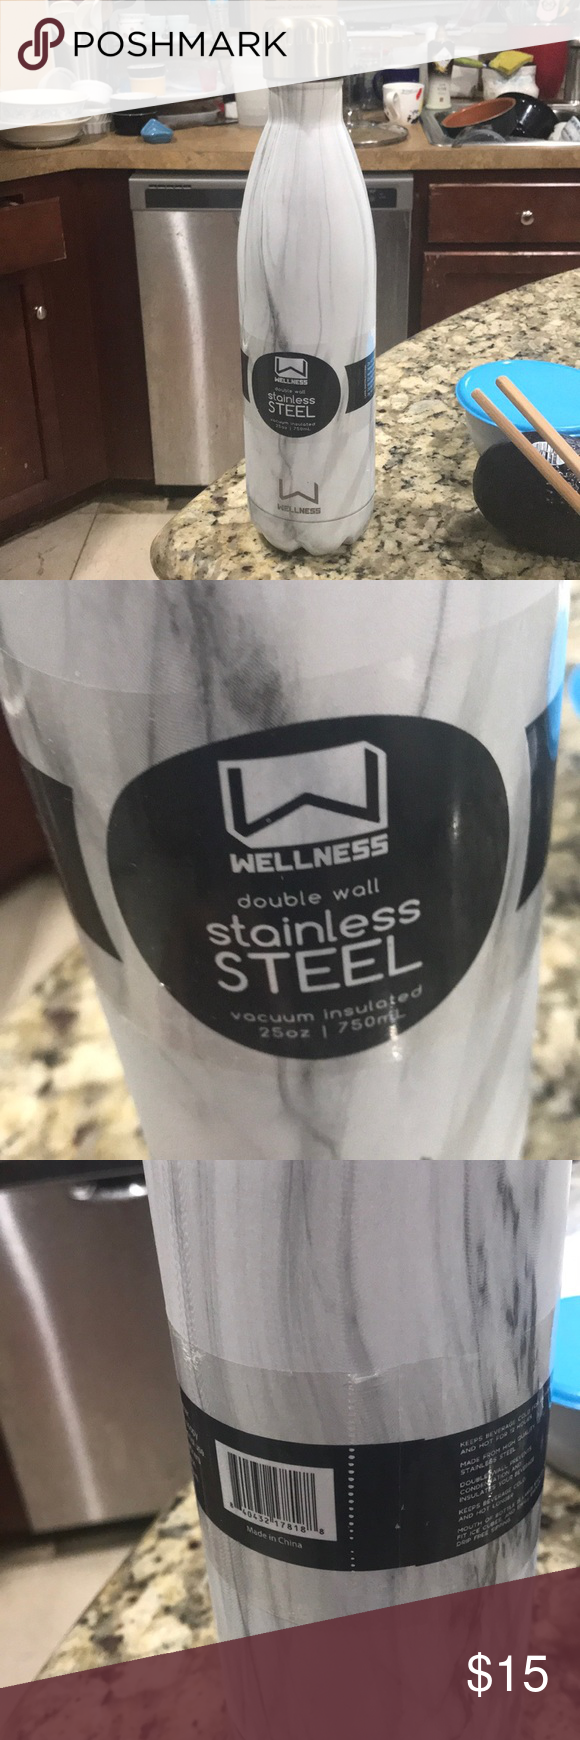 New Stainless Steel Bottle Stainless Steel Bottle Stainless Steel Steel